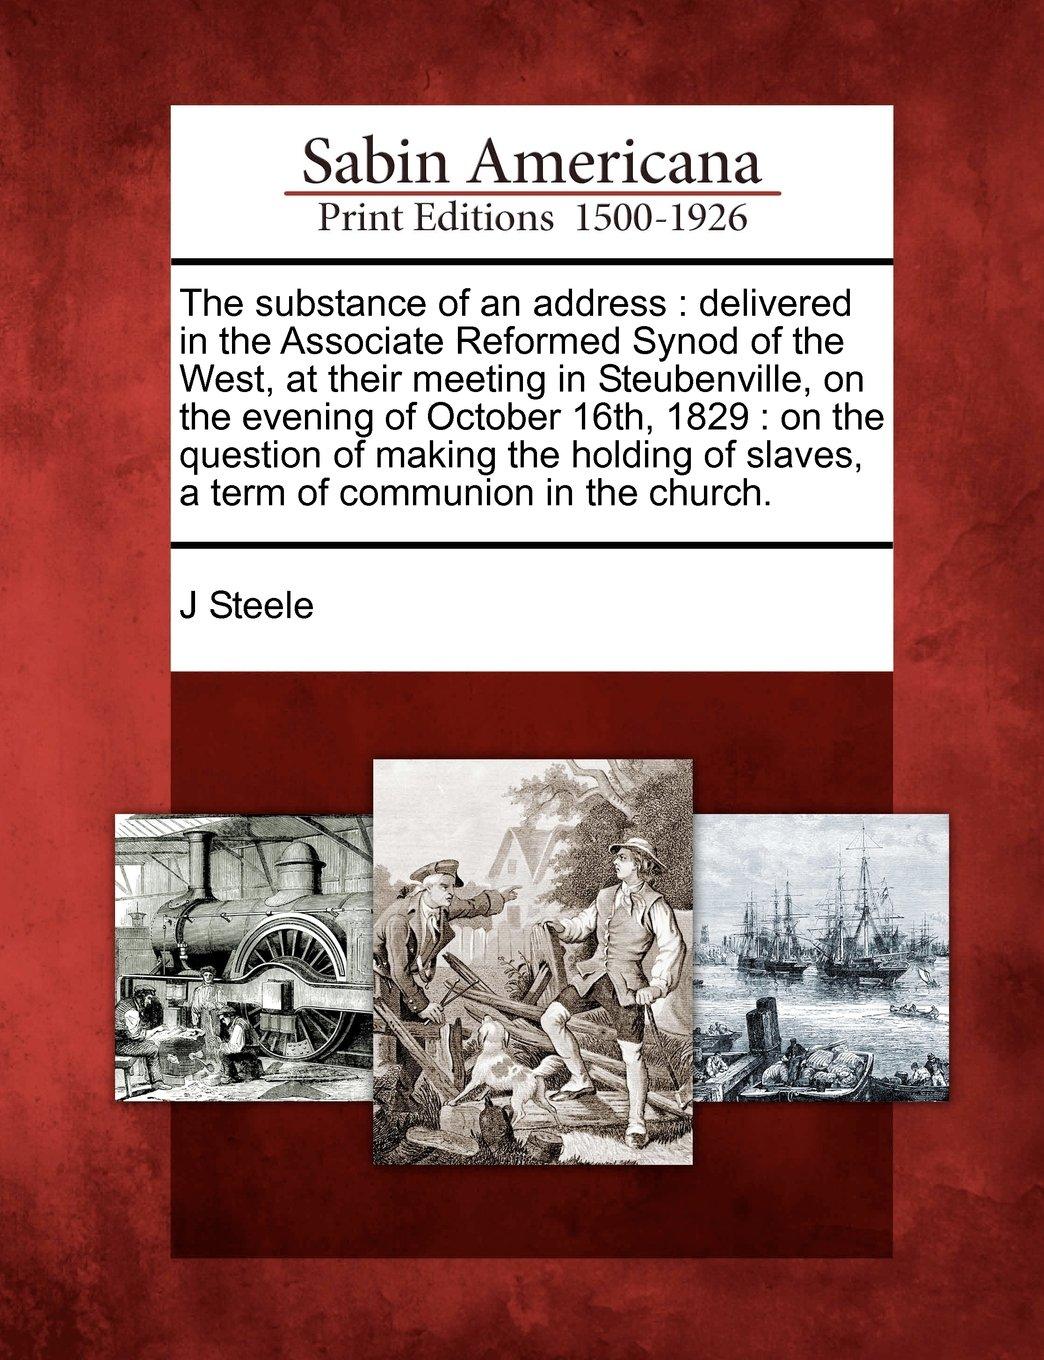 Download The substance of an address: delivered in the Associate Reformed Synod of the West, at their meeting in Steubenville, on the evening of October 16th, ... of slaves, a term of communion in the church. ebook